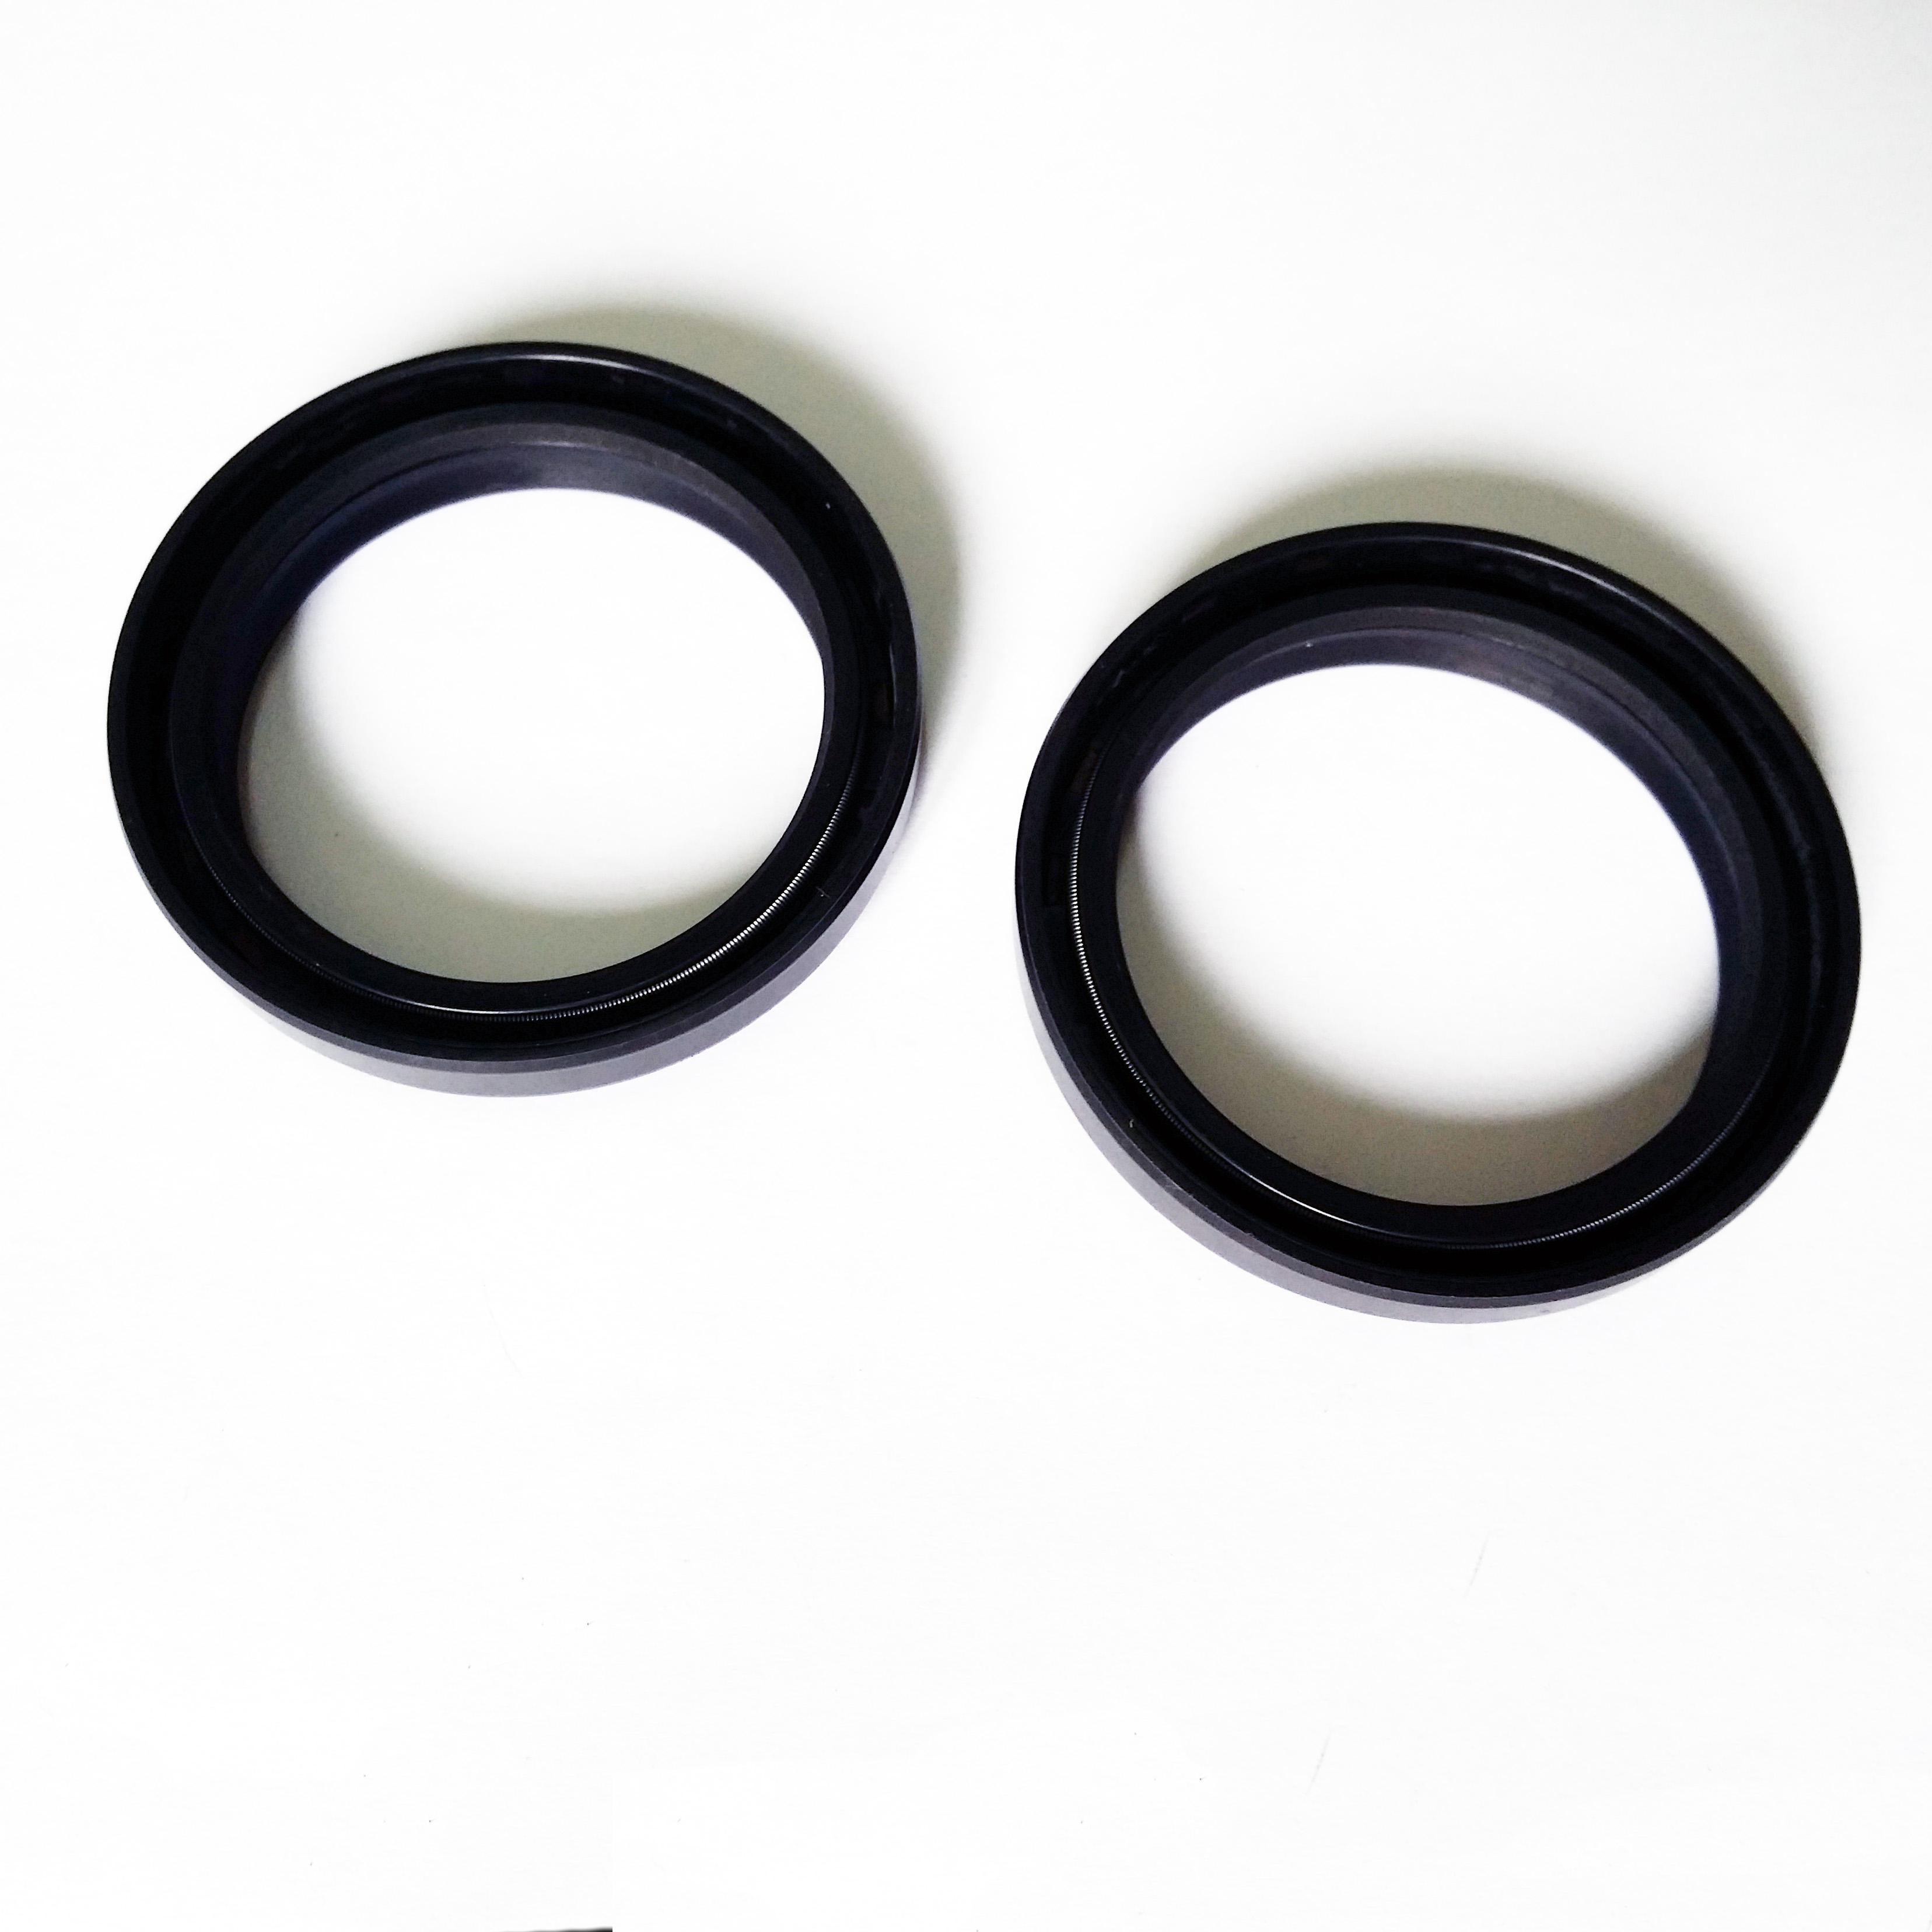 K-Tech Kawasaki KX250F 2006-2012 NOK Front Fork Oil Seals 47x58x10mm